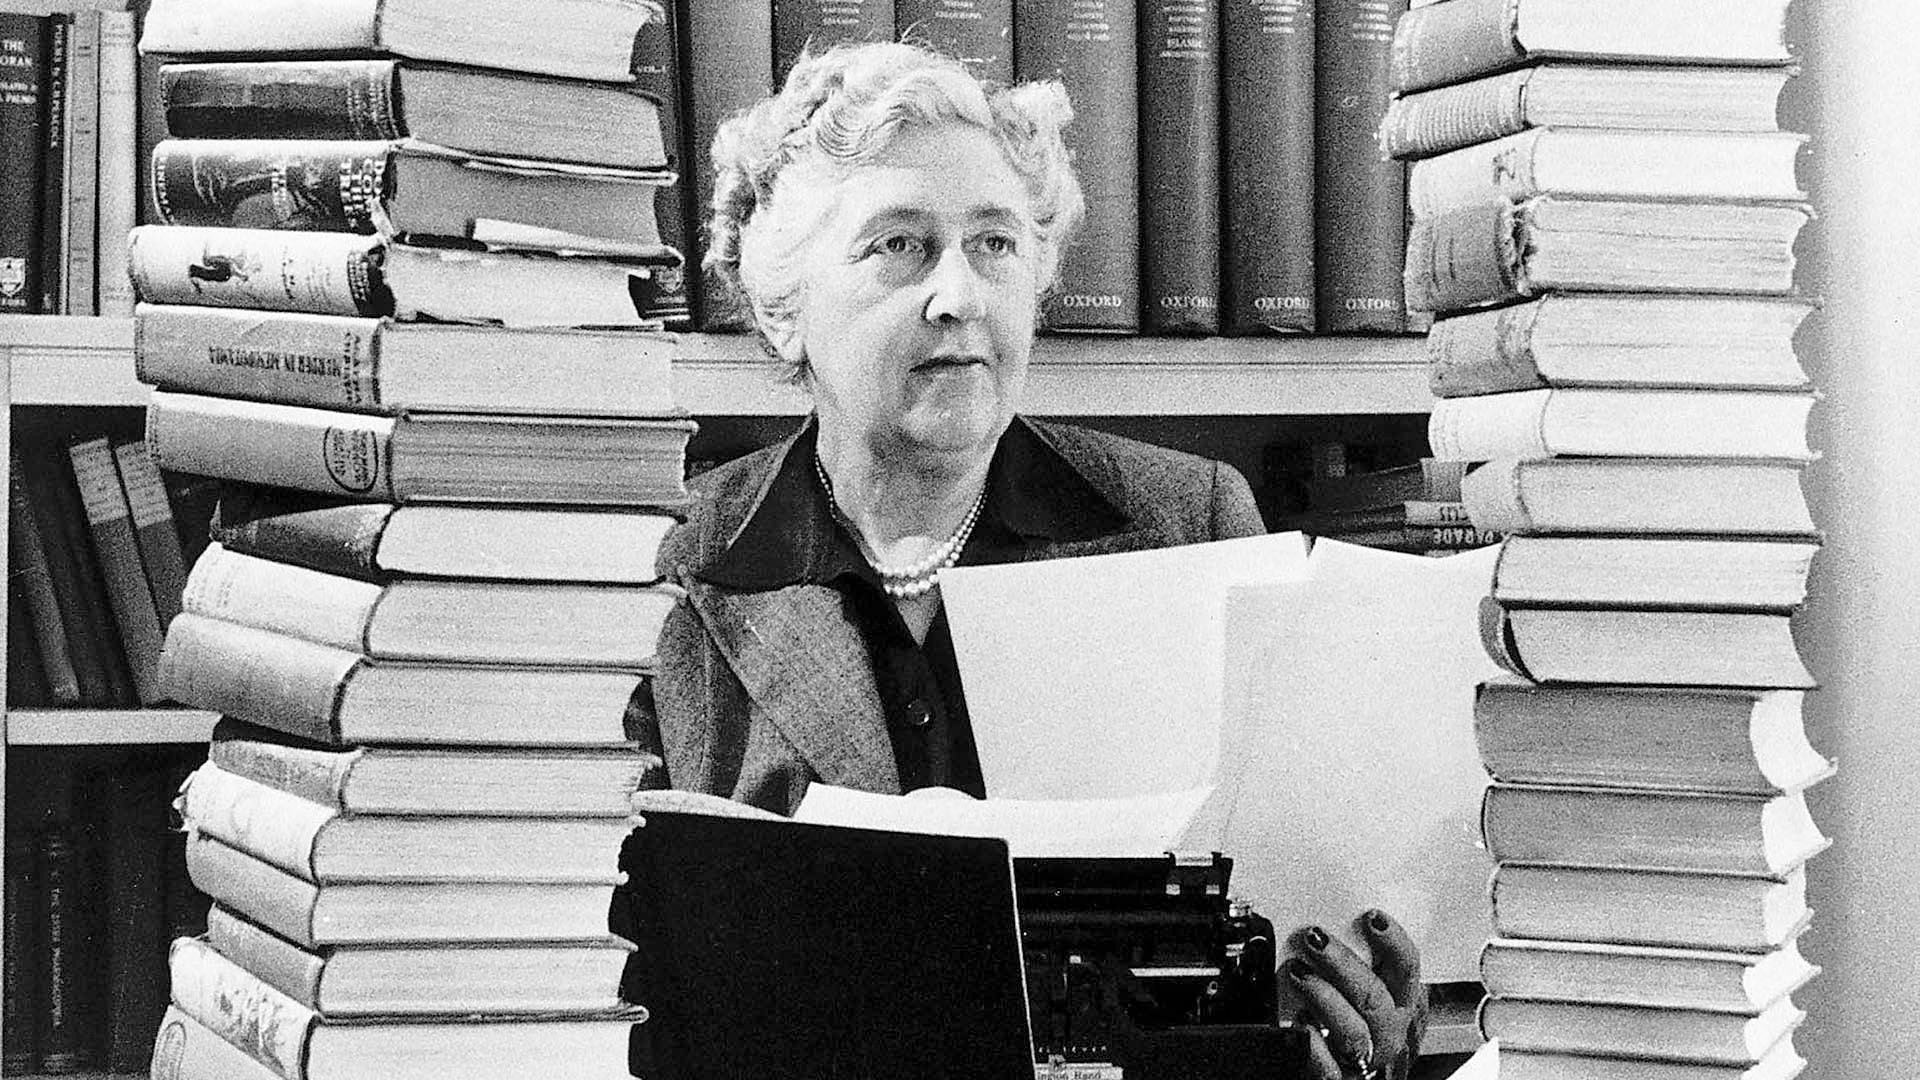 Agatha christie wallpaper 1920x1080 76393 - Www agatha christie com ...